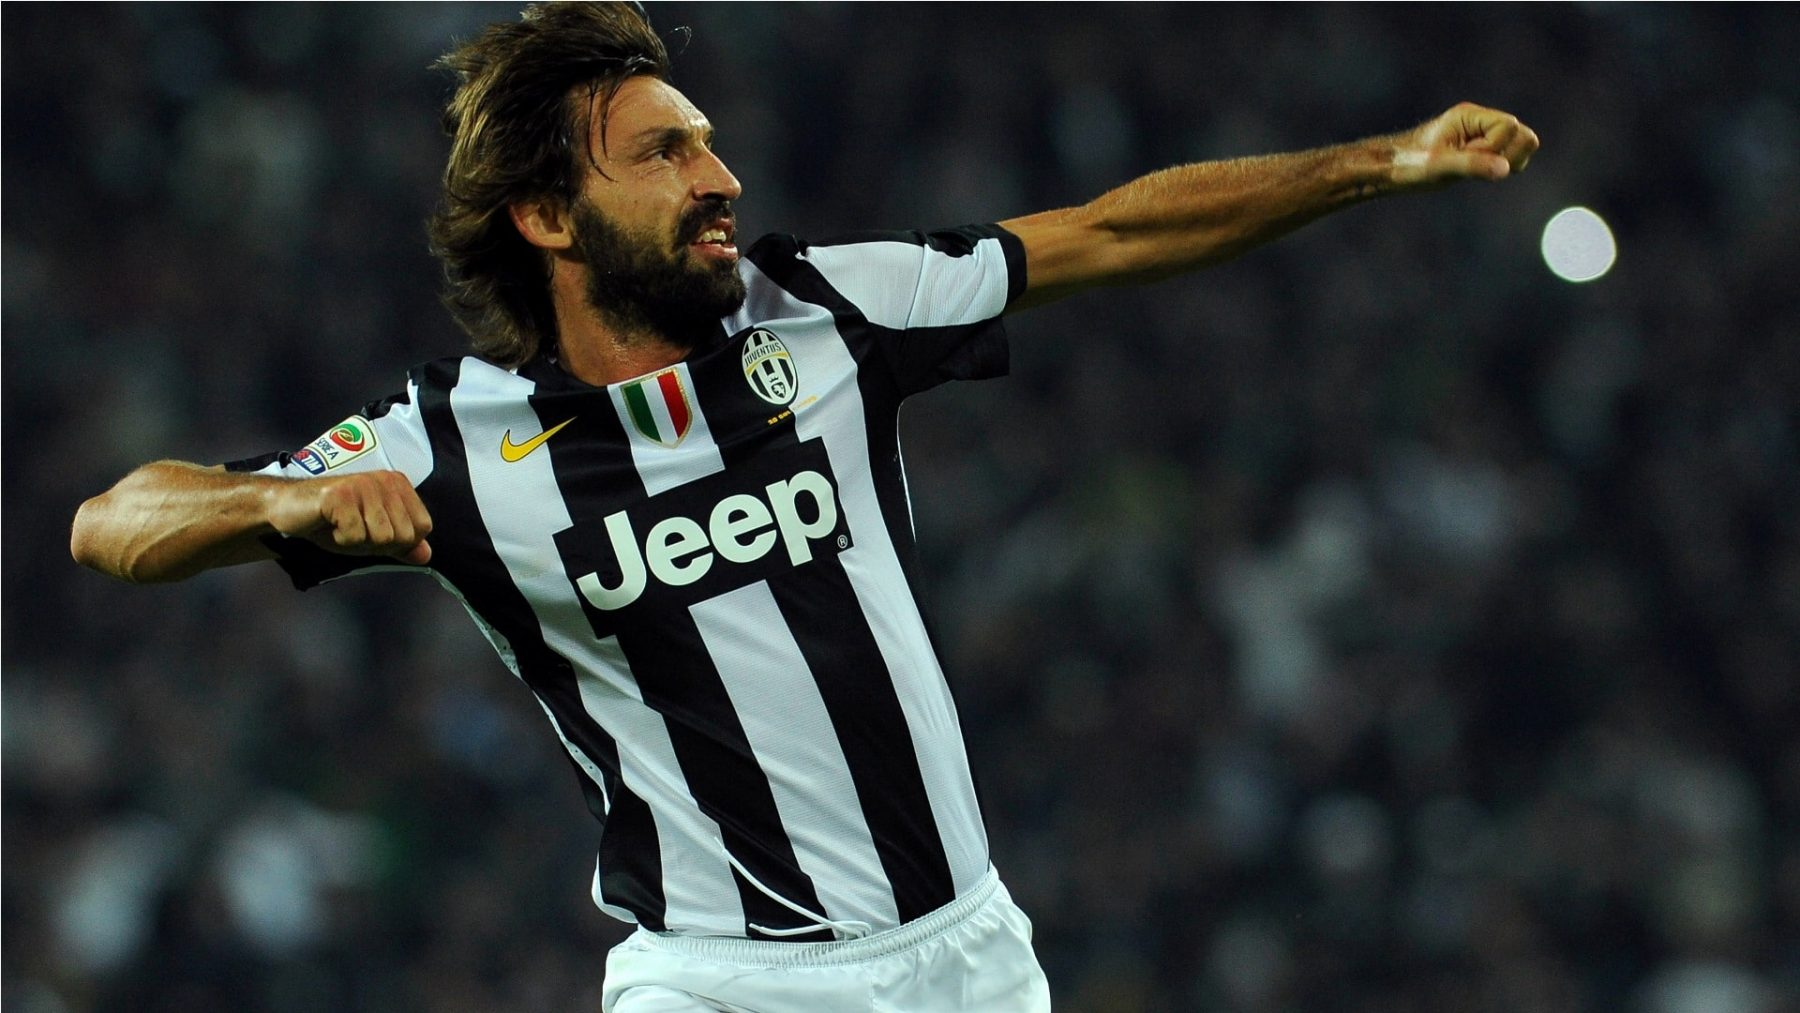 Juventus Wallpaper Iphone X Andrea Pirlo Hd Wallpapers 7wallpapers Net